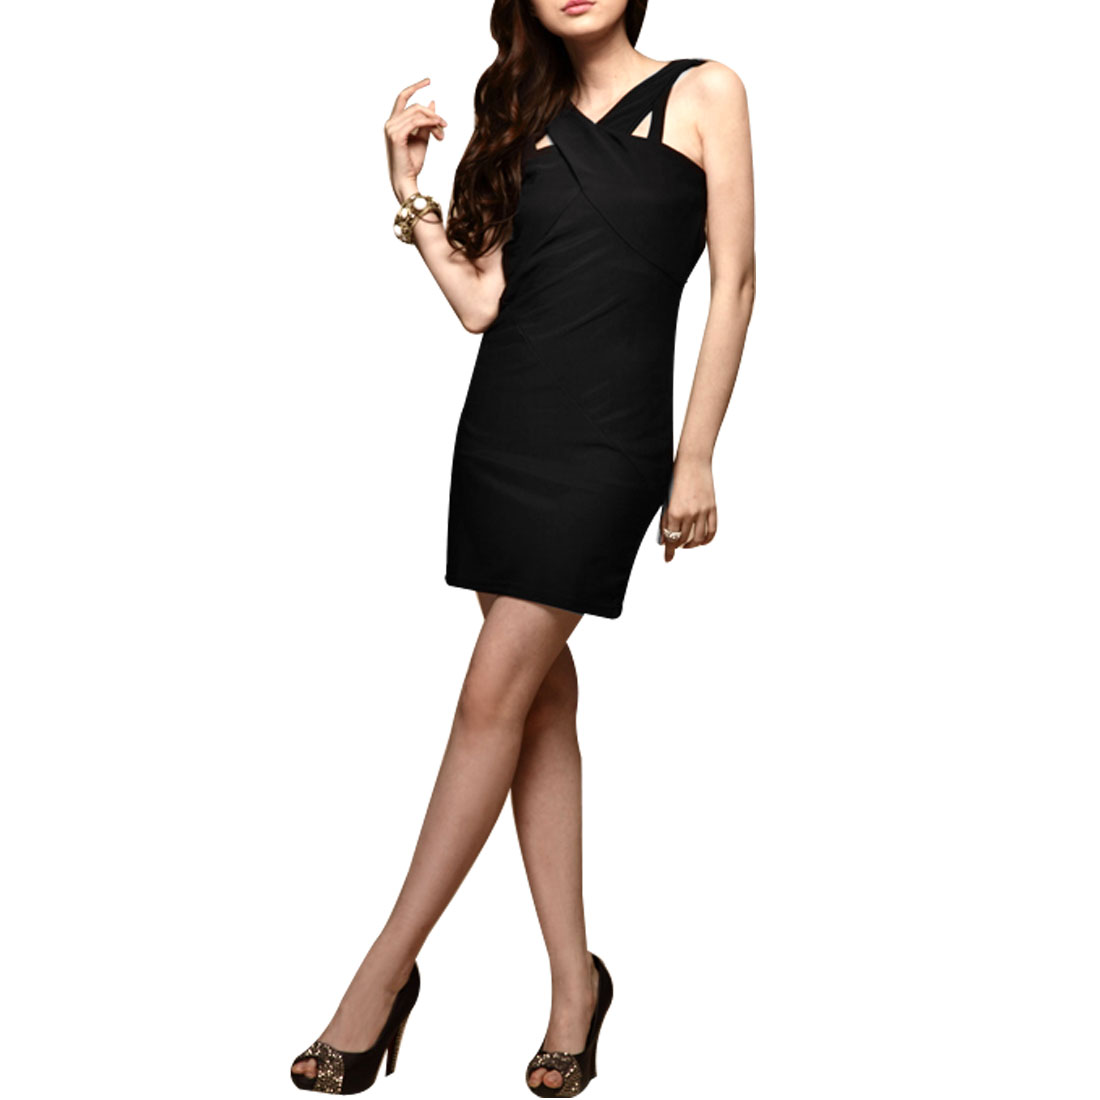 Ladies Sleevesless Hollow Out Back Solid Black Mini Bodycon Dress XS